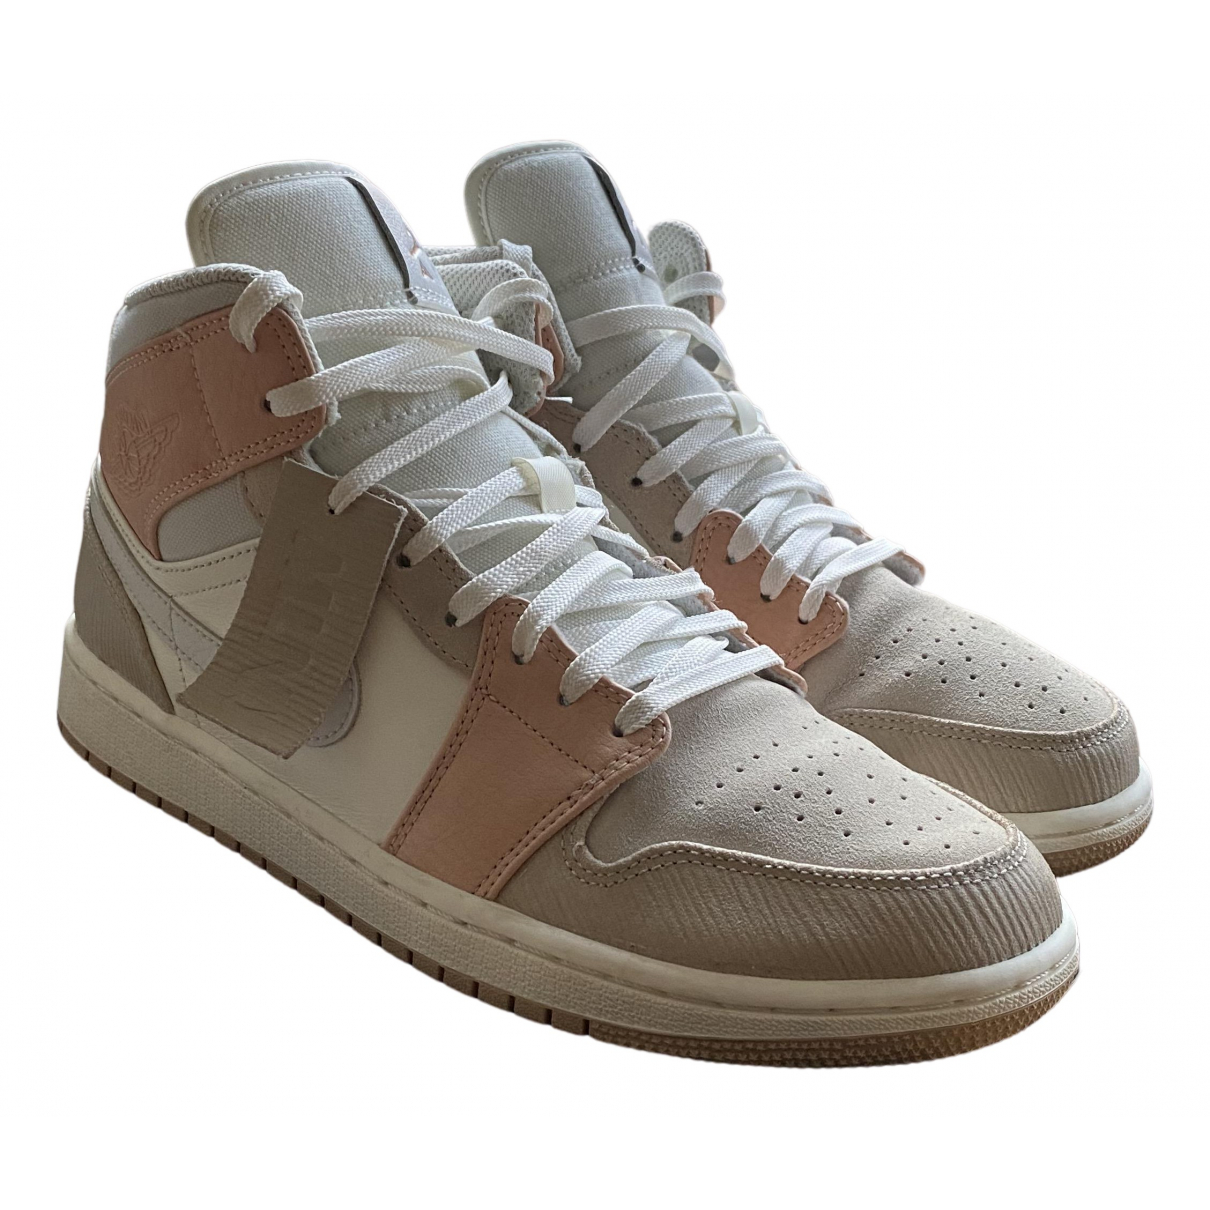 Jordan Air Jordan 1  Beige Leather Trainers for Women 8 UK